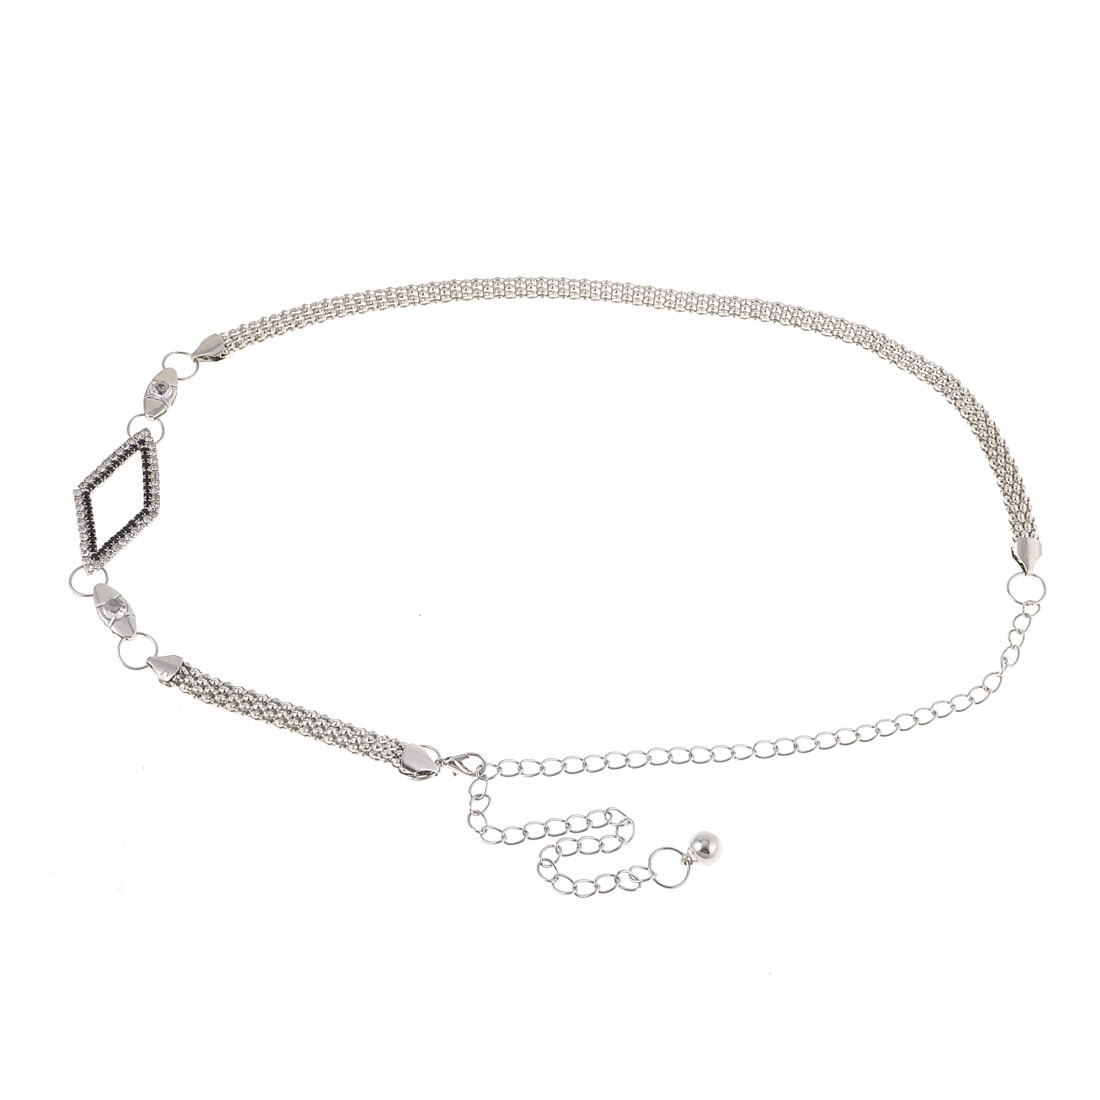 Silver Tone Metallic Lobster Clasp Waist Chain Belt for Lady